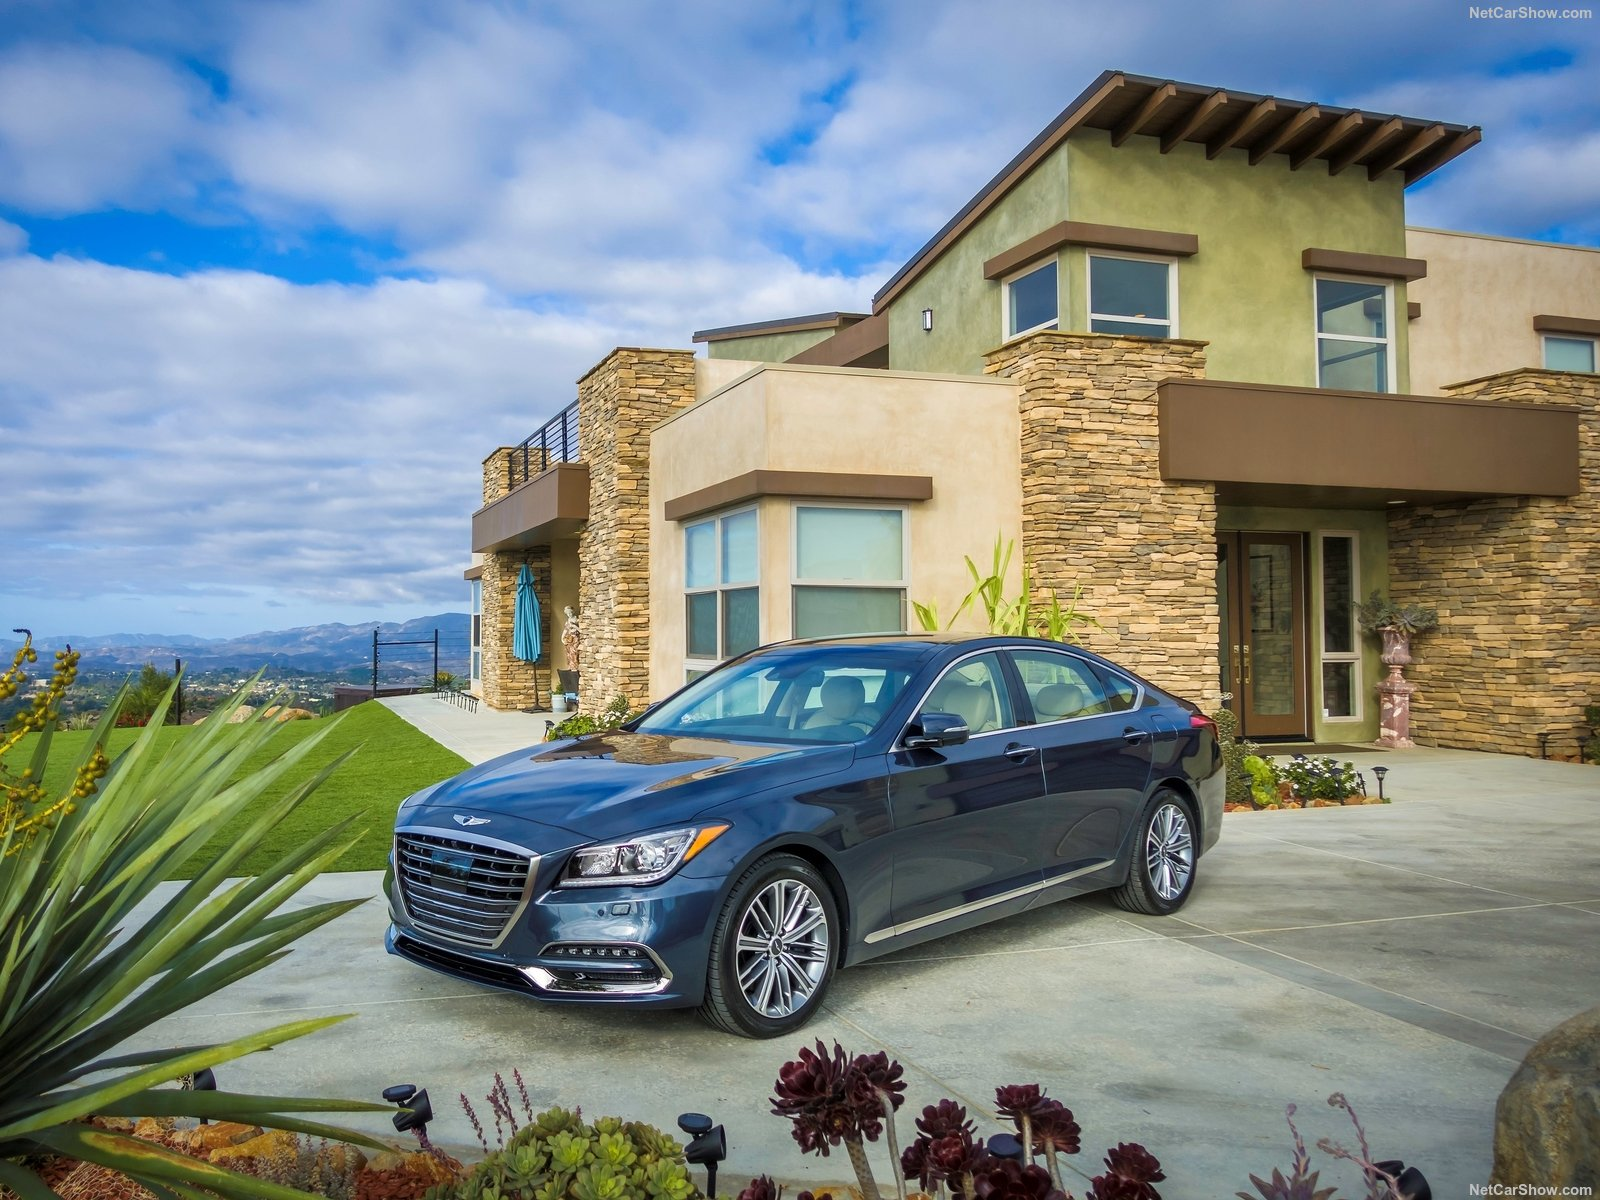 Hyundai Genesis G80 photo 183386